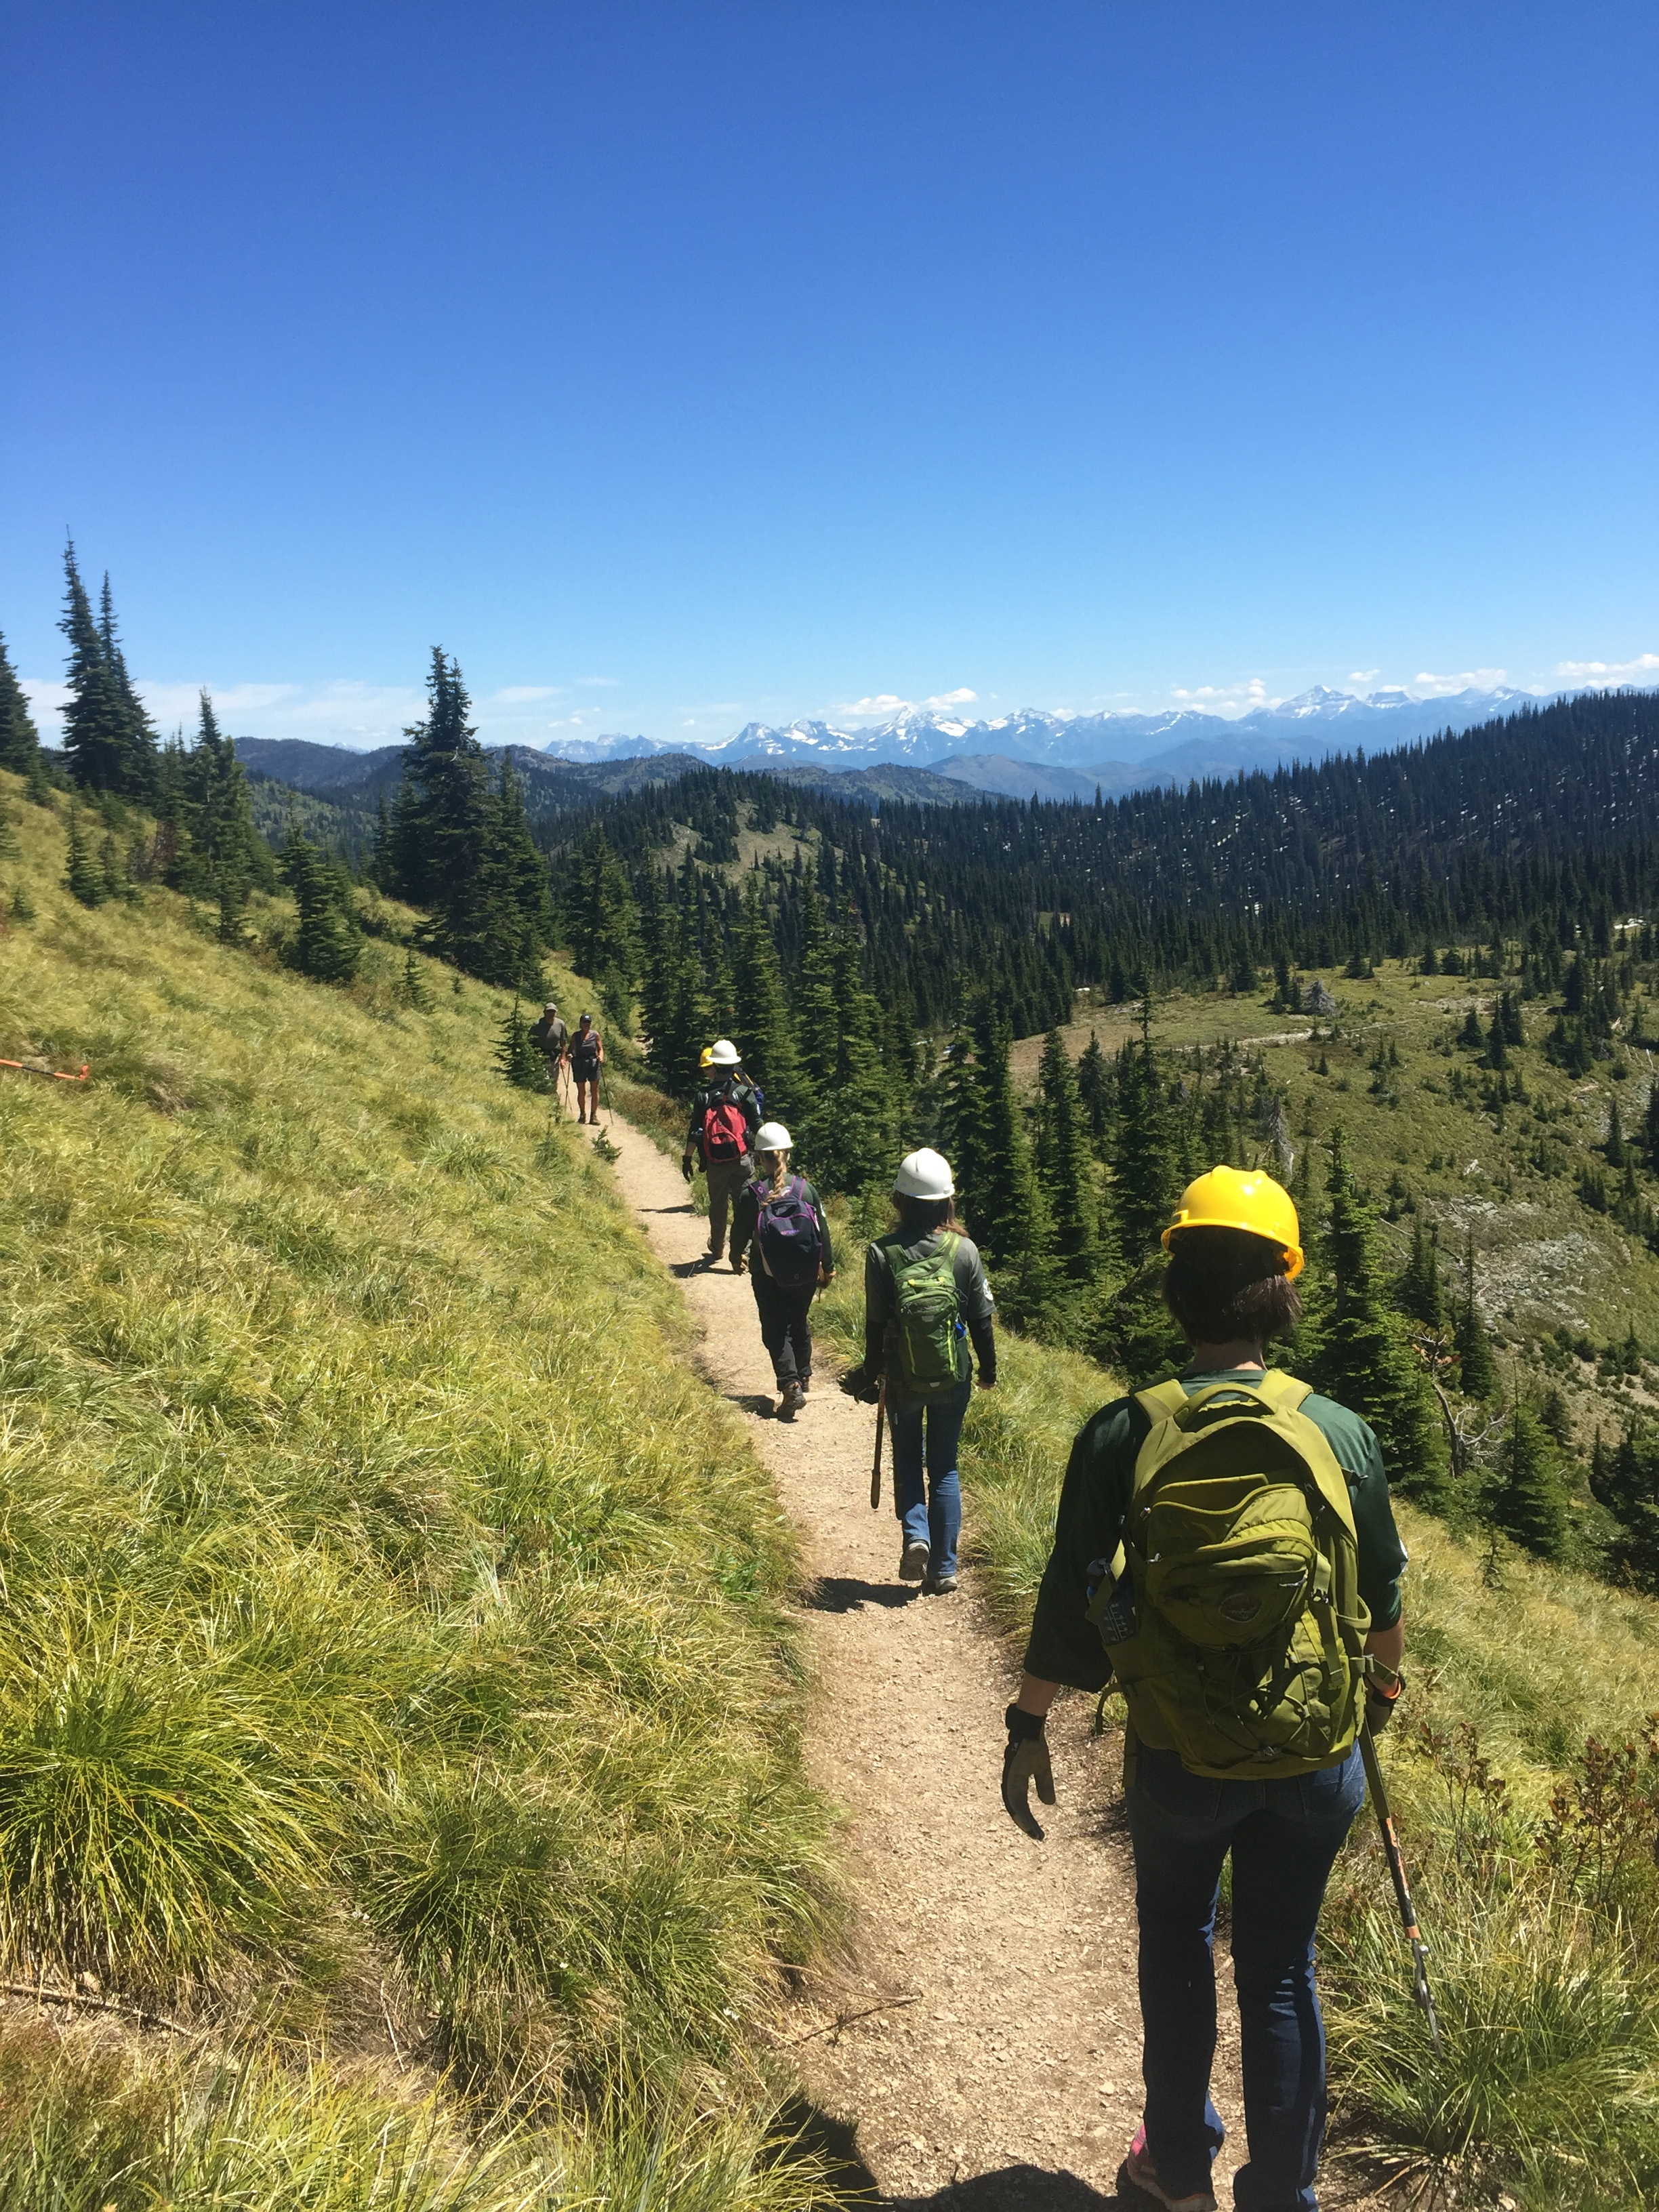 Montana Conservation Corps hiking on a trail.